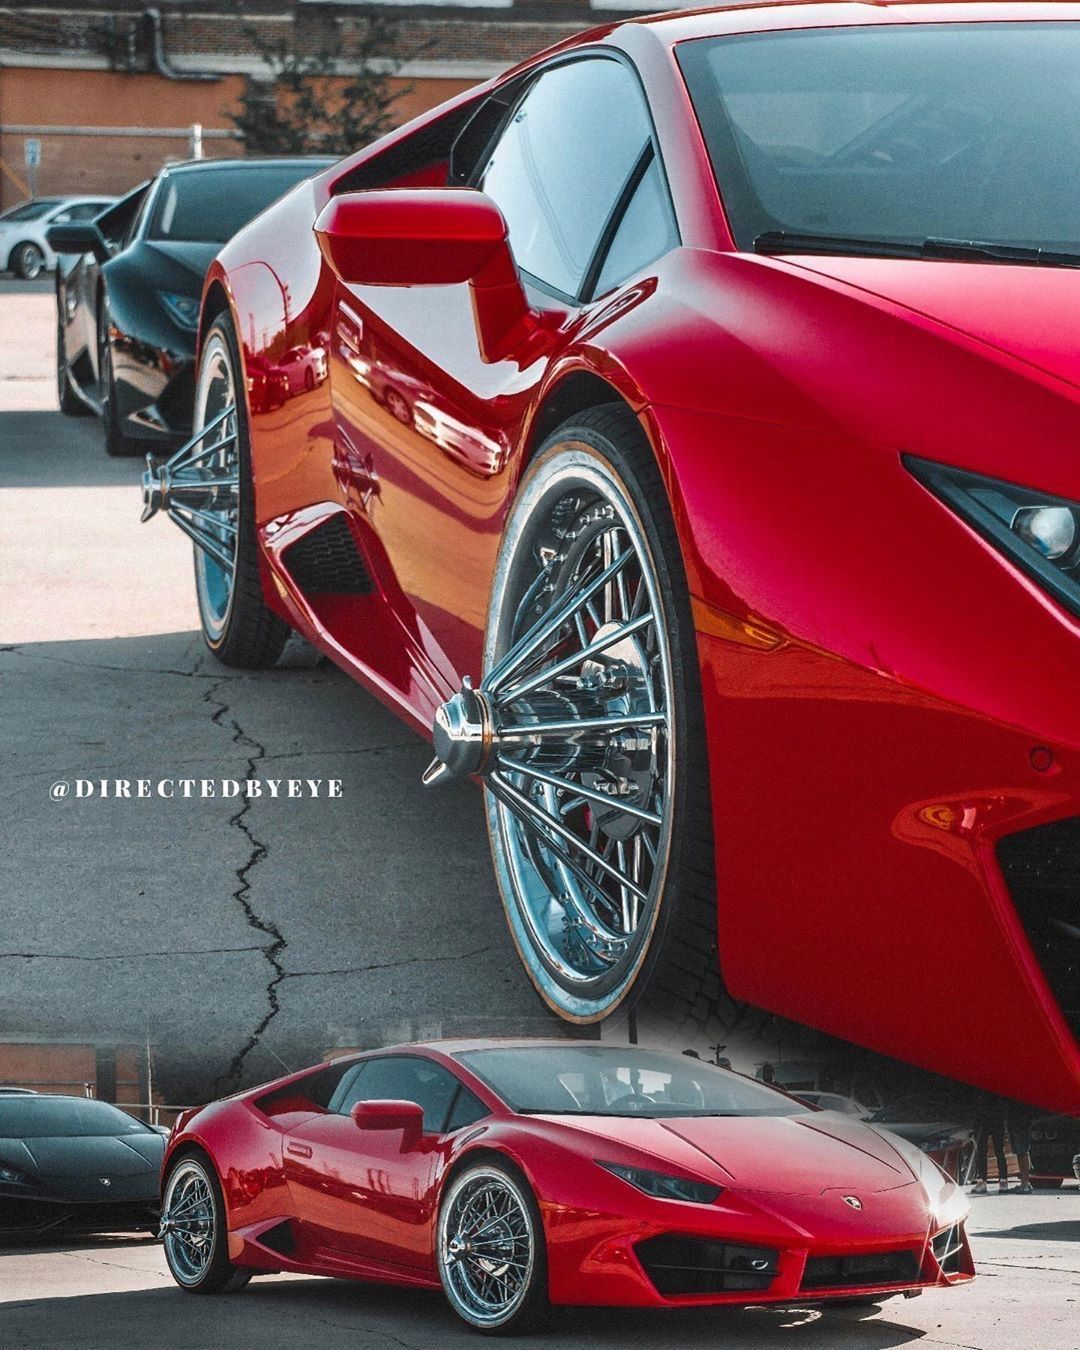 Only In Texas Lambo On Texan Wire Wheels And Vogue Tyres Swangas Lamborghini Voguetyre Lambo Custom Cars Wire Wheel